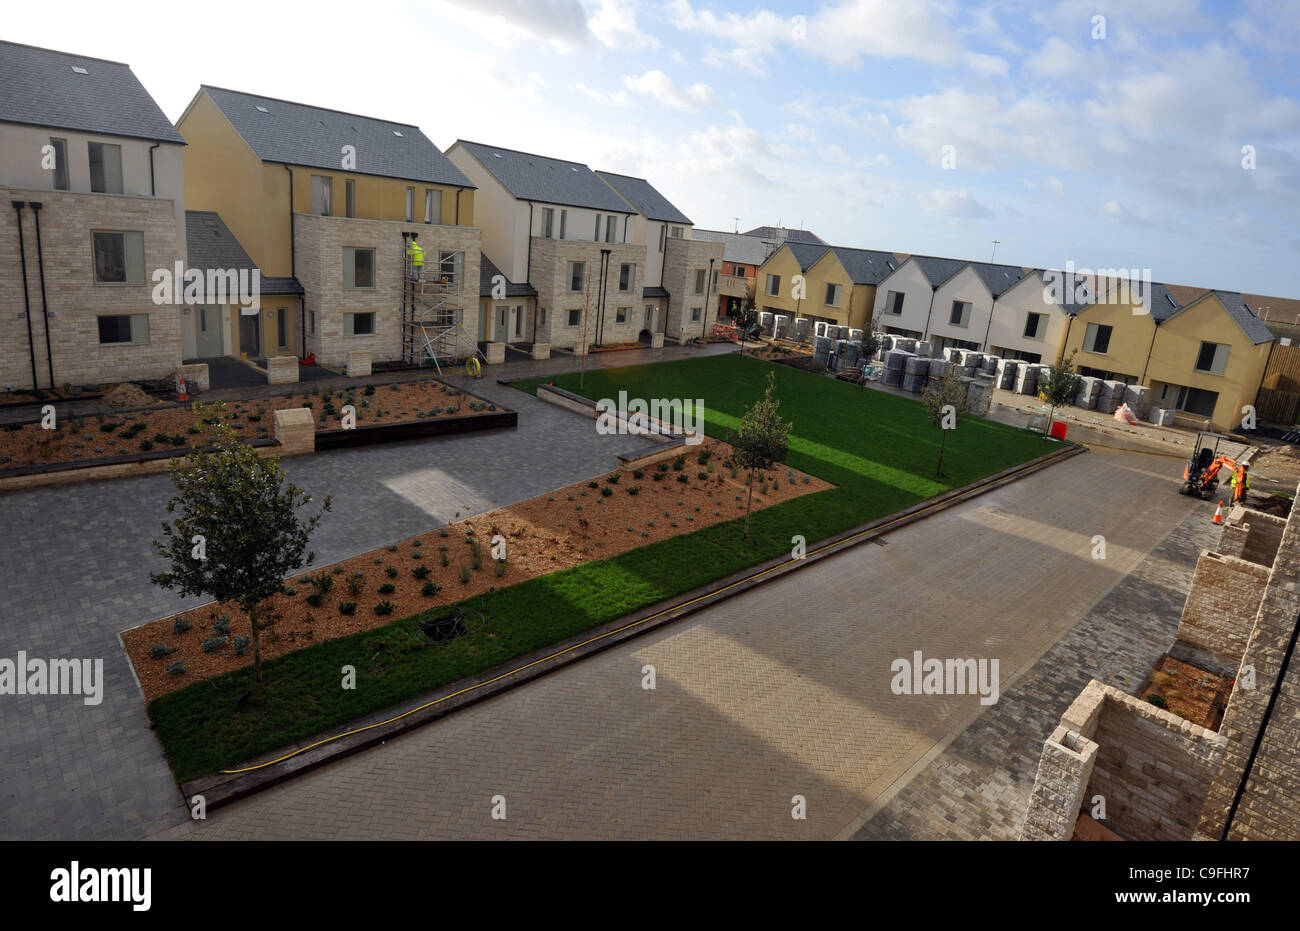 2012 Olympic sailing village at Portland, Dorset, Britain, UK - Stock Image